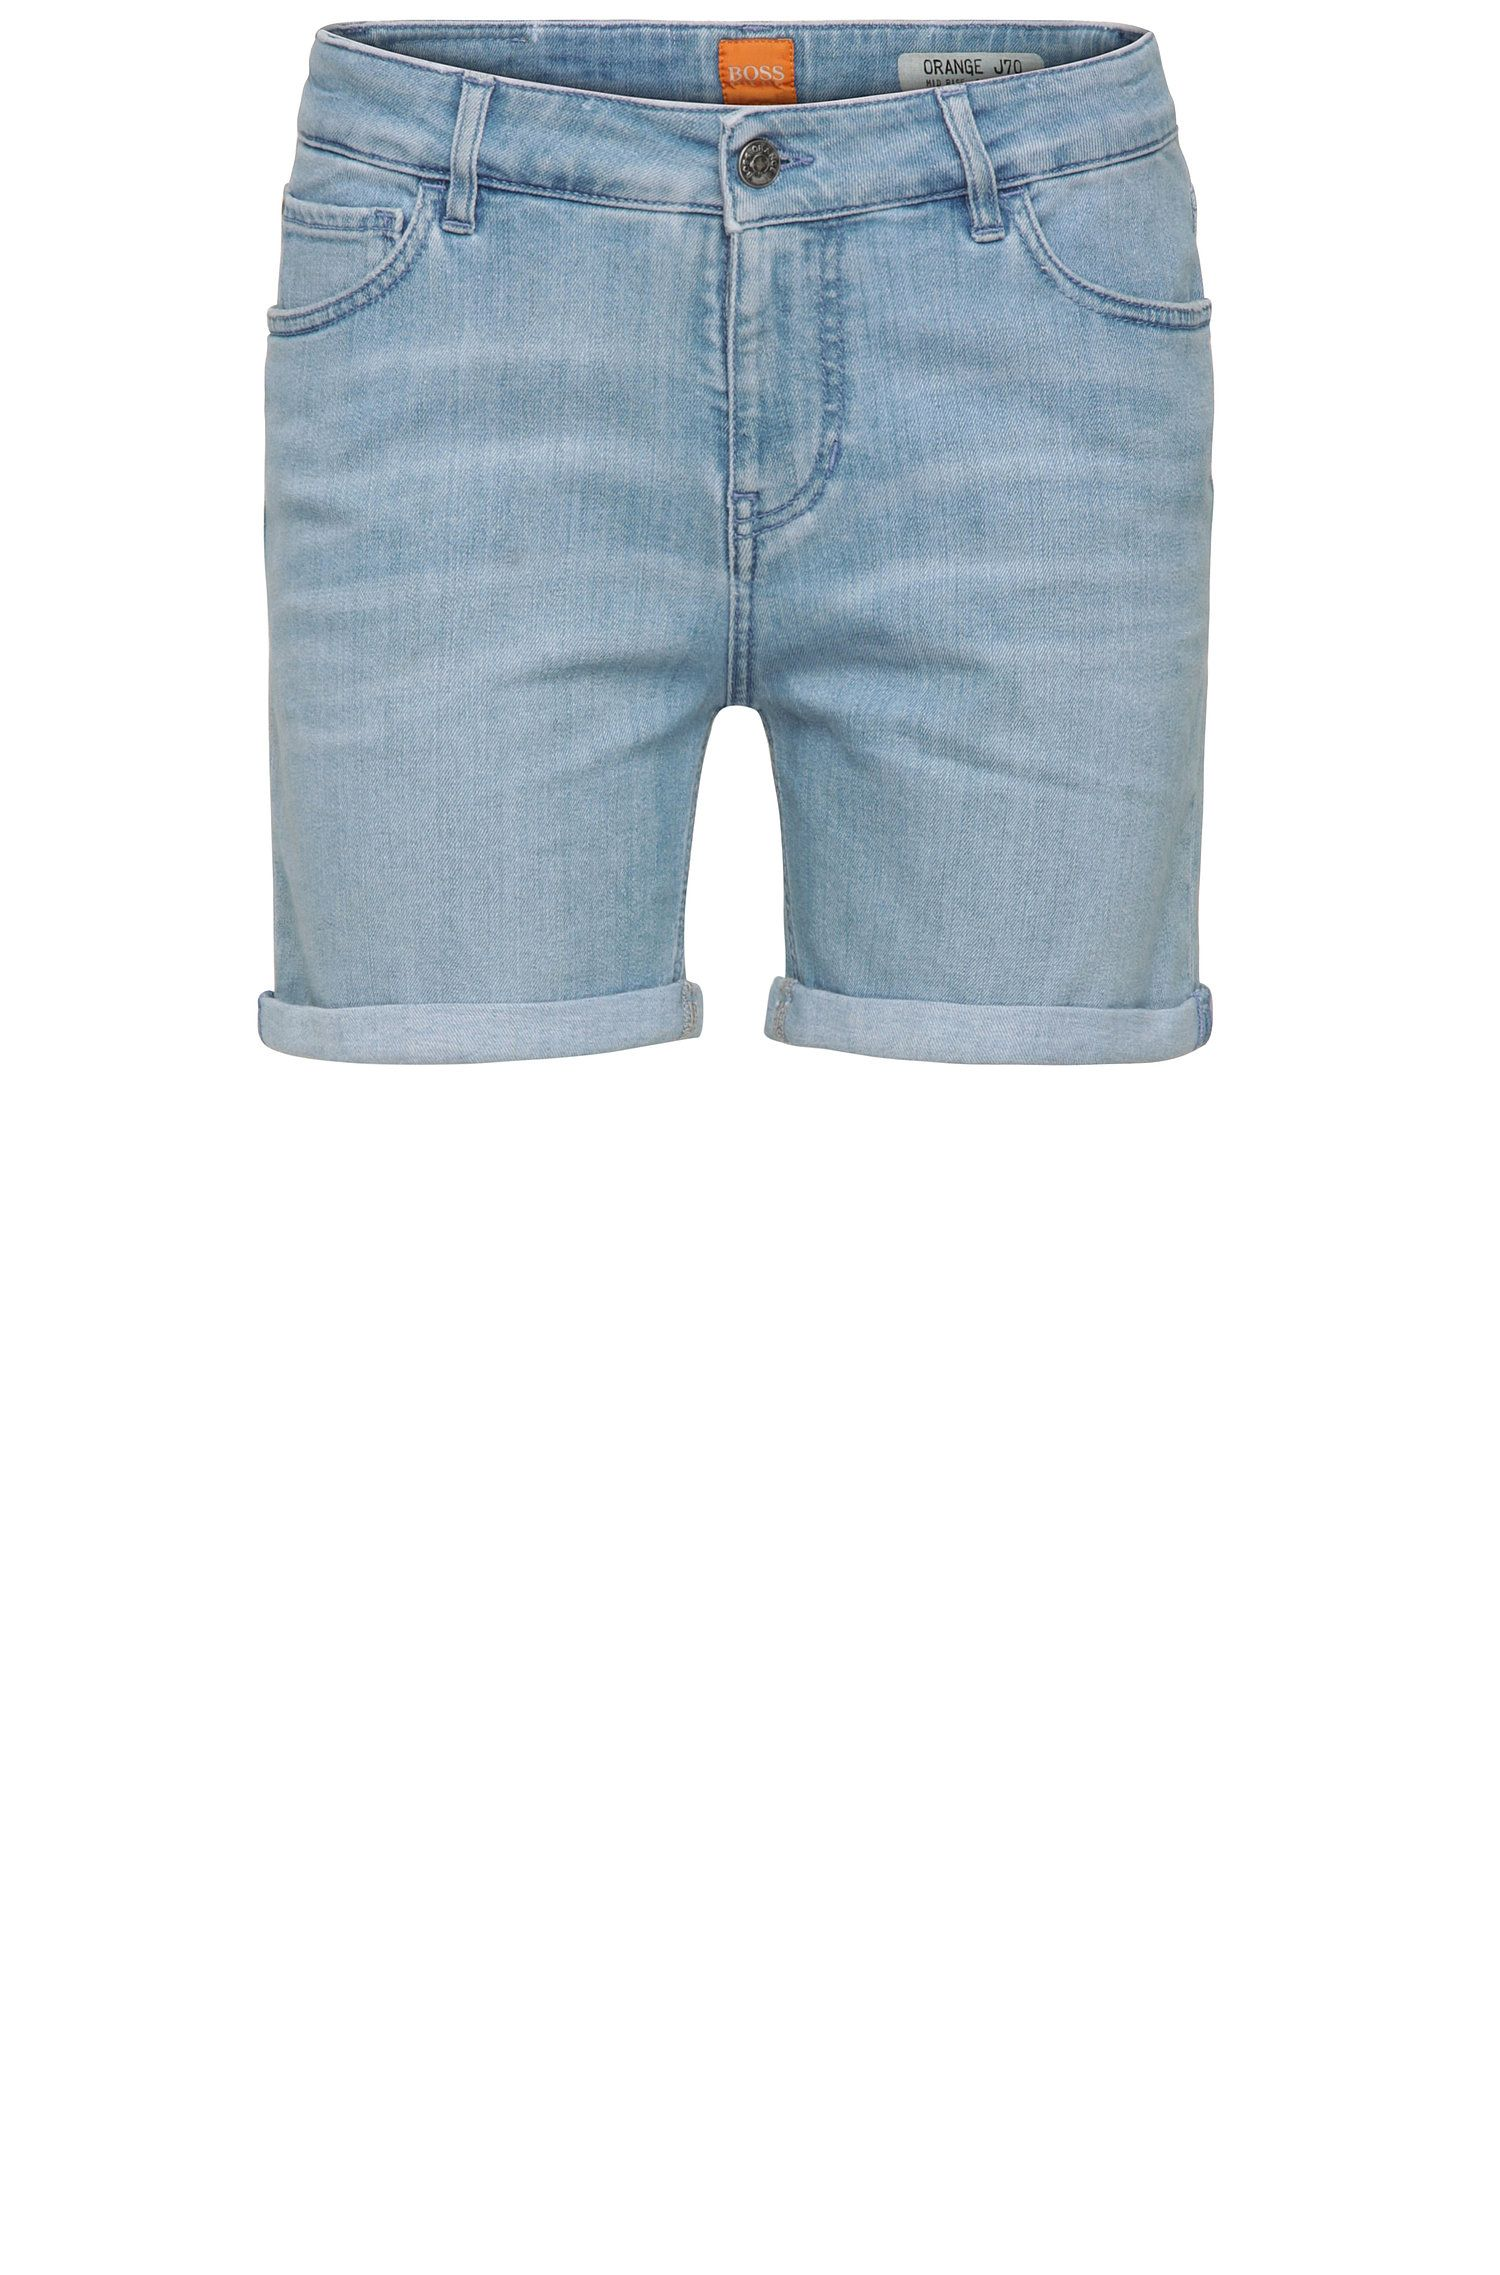 Lockere Jeans-Shorts aus elastischem Baumwoll-Mix: ´Orange J70 Hershey`